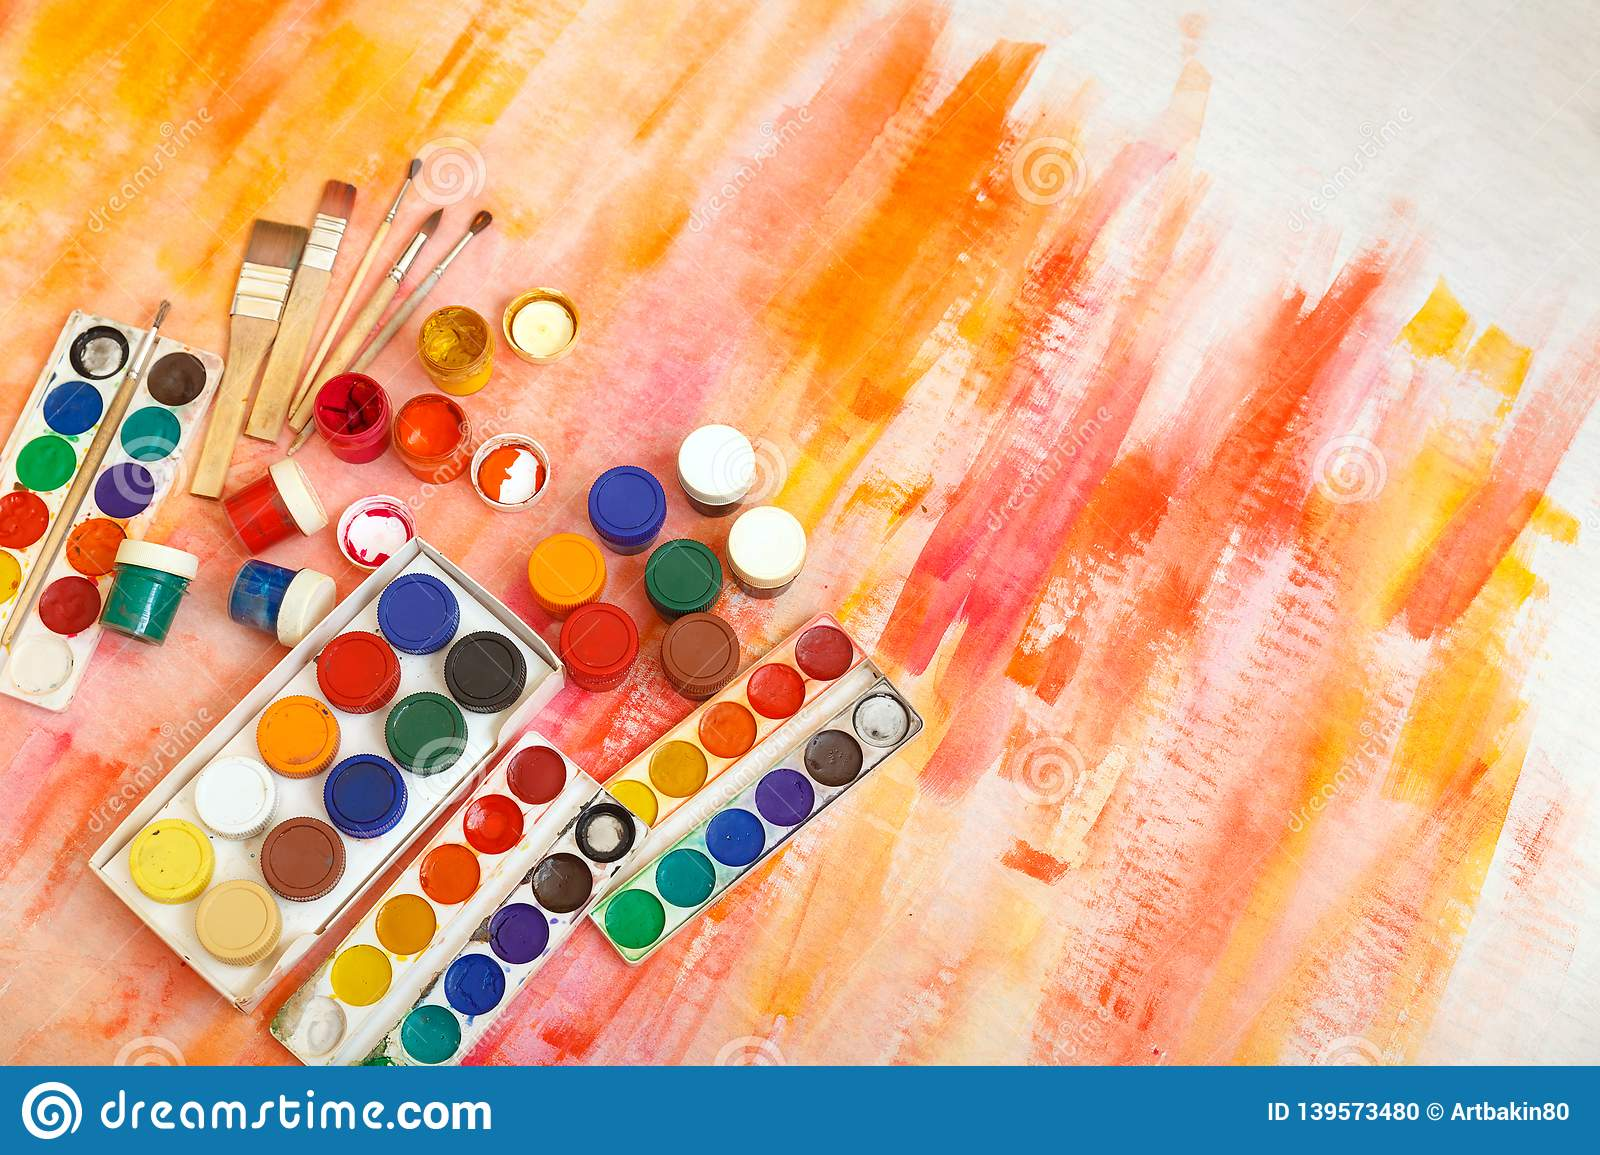 Abstract Colorful Watercolor For Background. Artist Tools, Watercolor,  Gouache Stock Photo - Image Of Creative, Background: 139573480